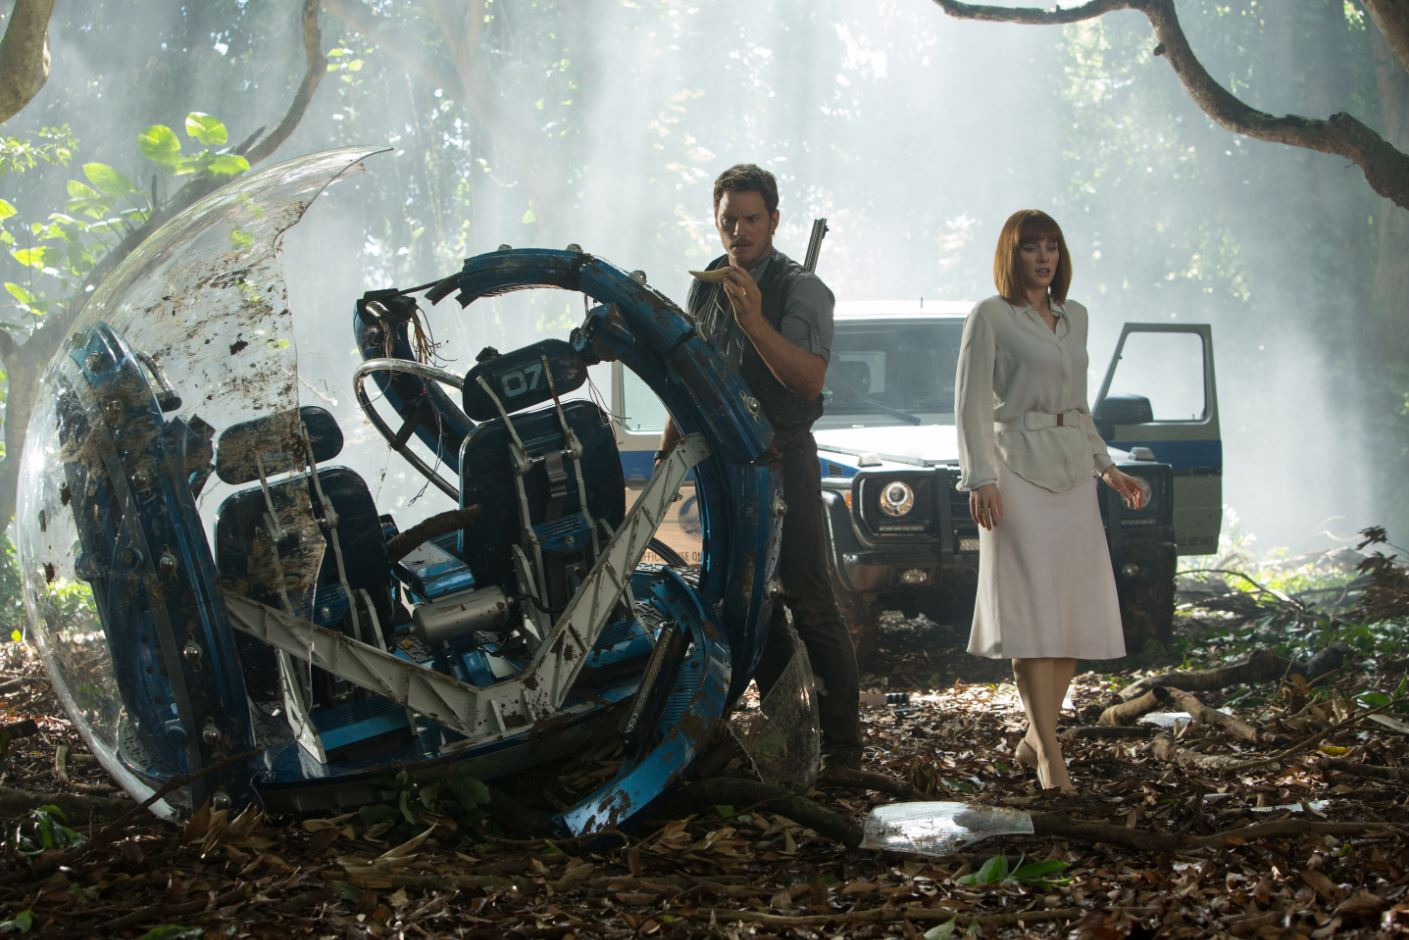 Claire and Owen near torn pod - Jurassic World pics